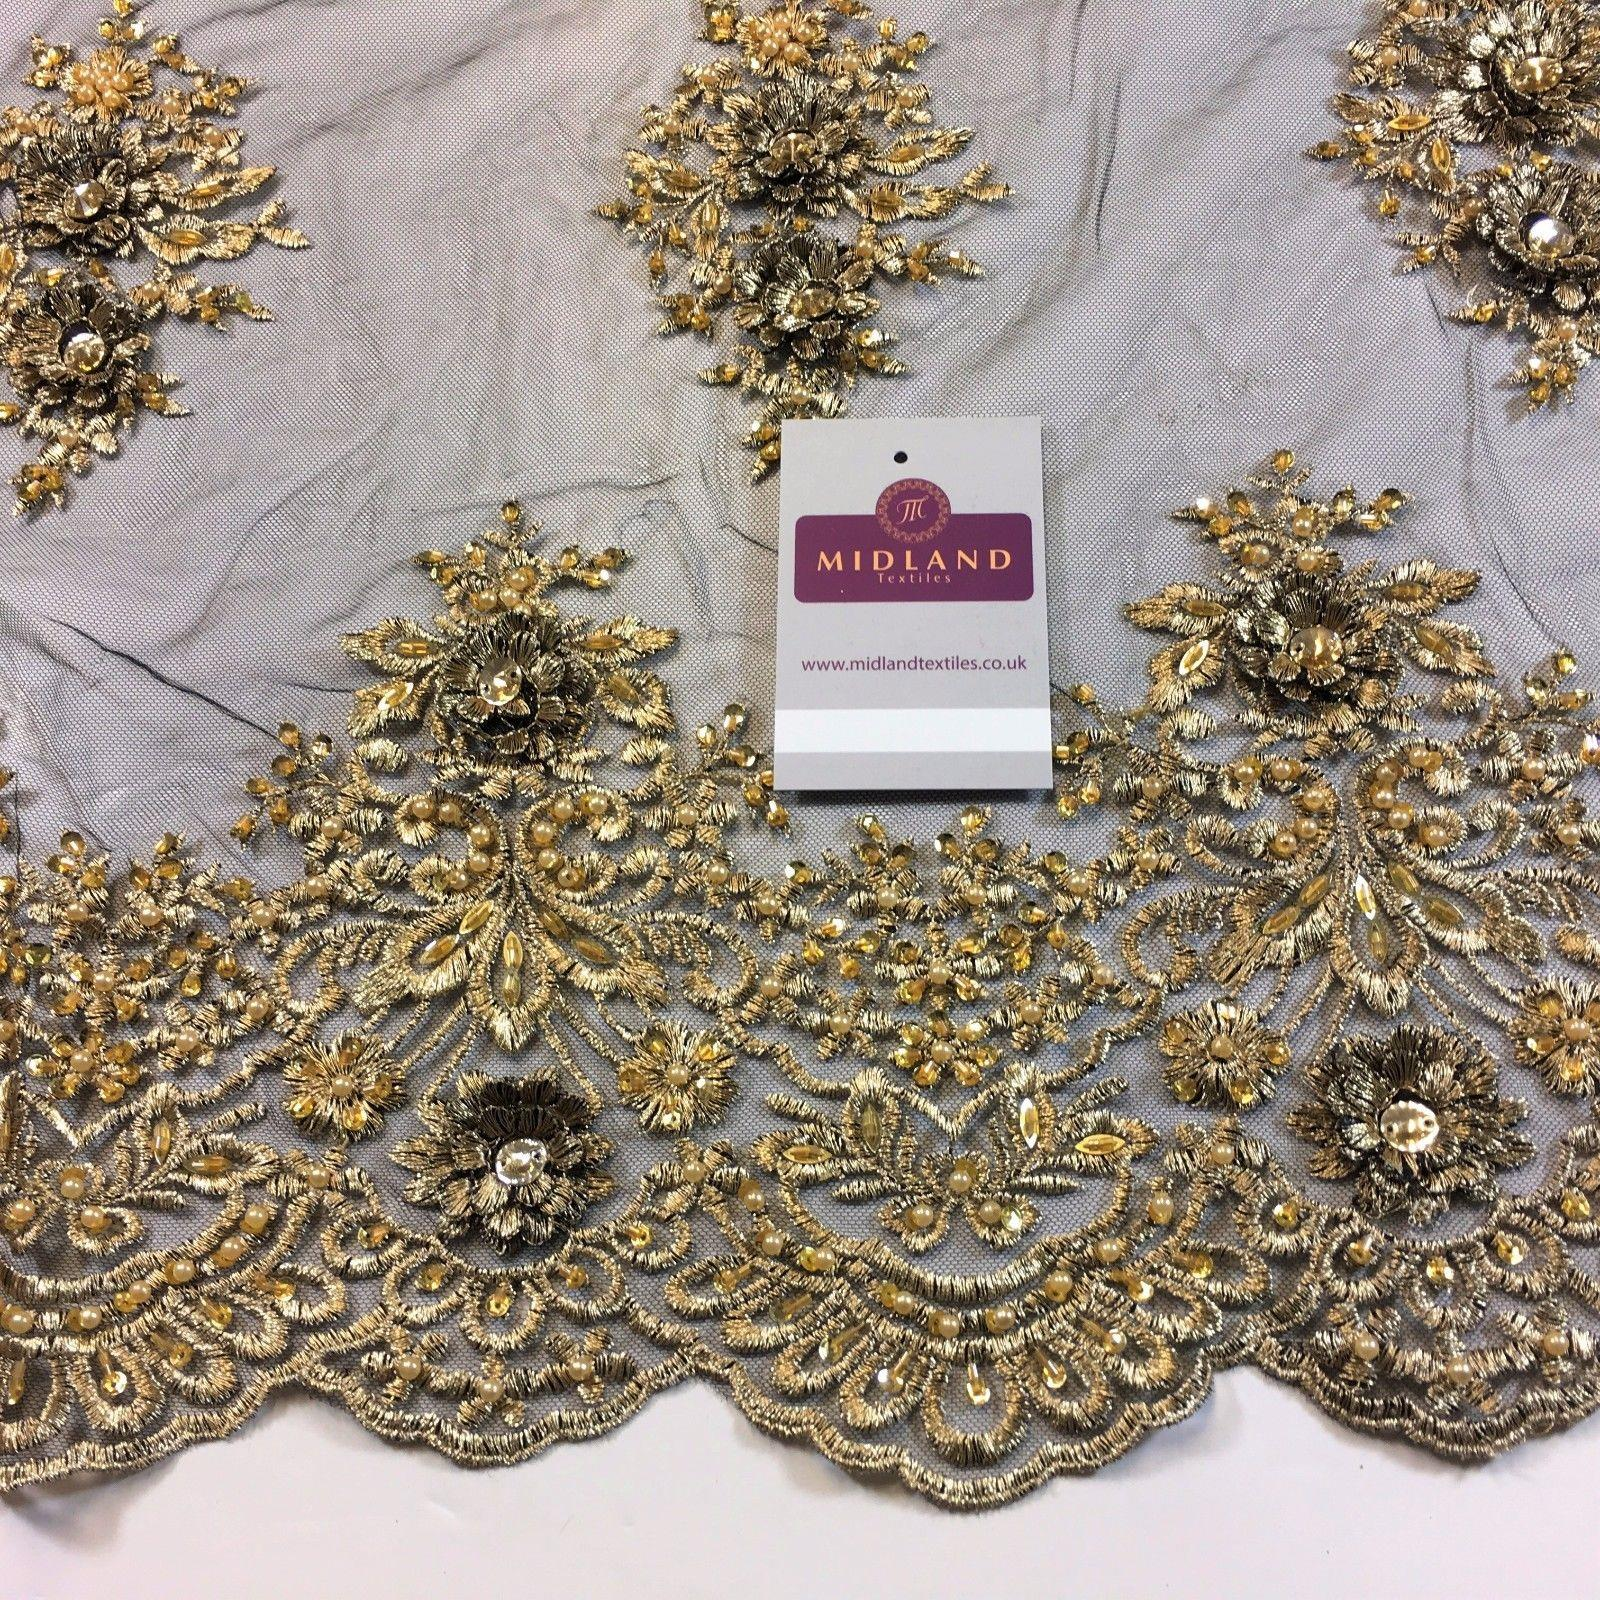 "Floral Embellished Scalloped Edged Dress Net with faux pearls Fabric 58"" M792 - Midland Textiles & Fabric"